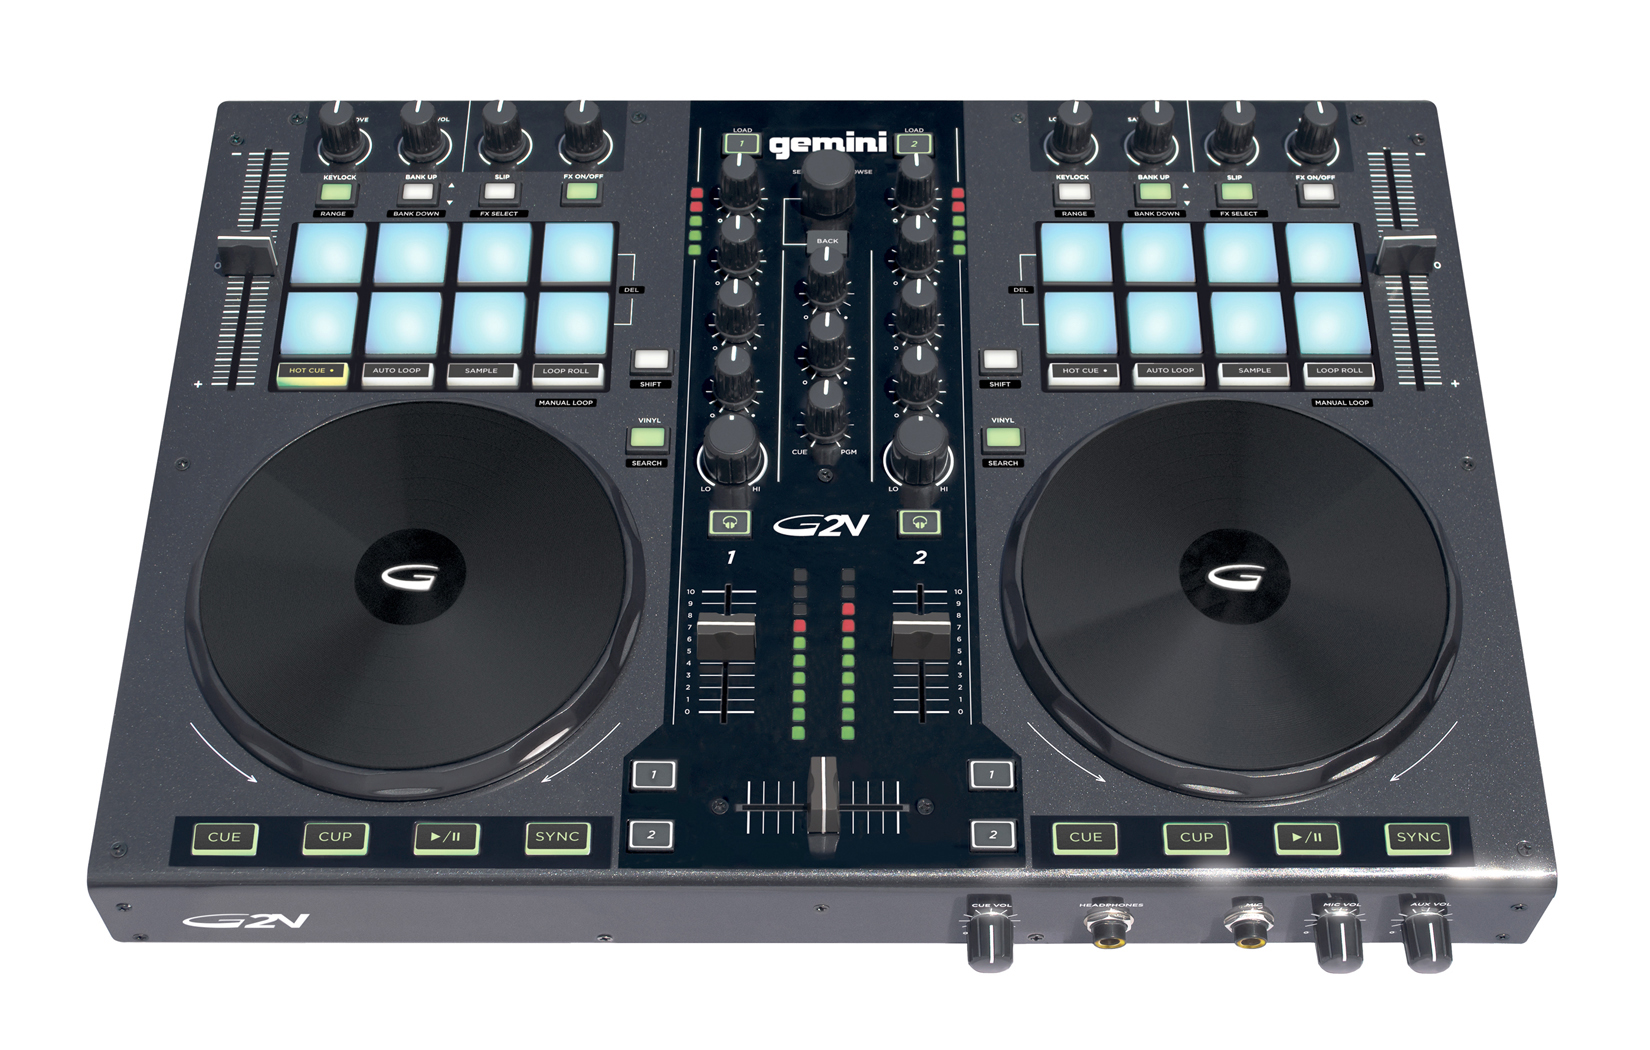 GEMINI G2V DJ CONTROLLER WITH AUDIO INTERFACE REVIEWS